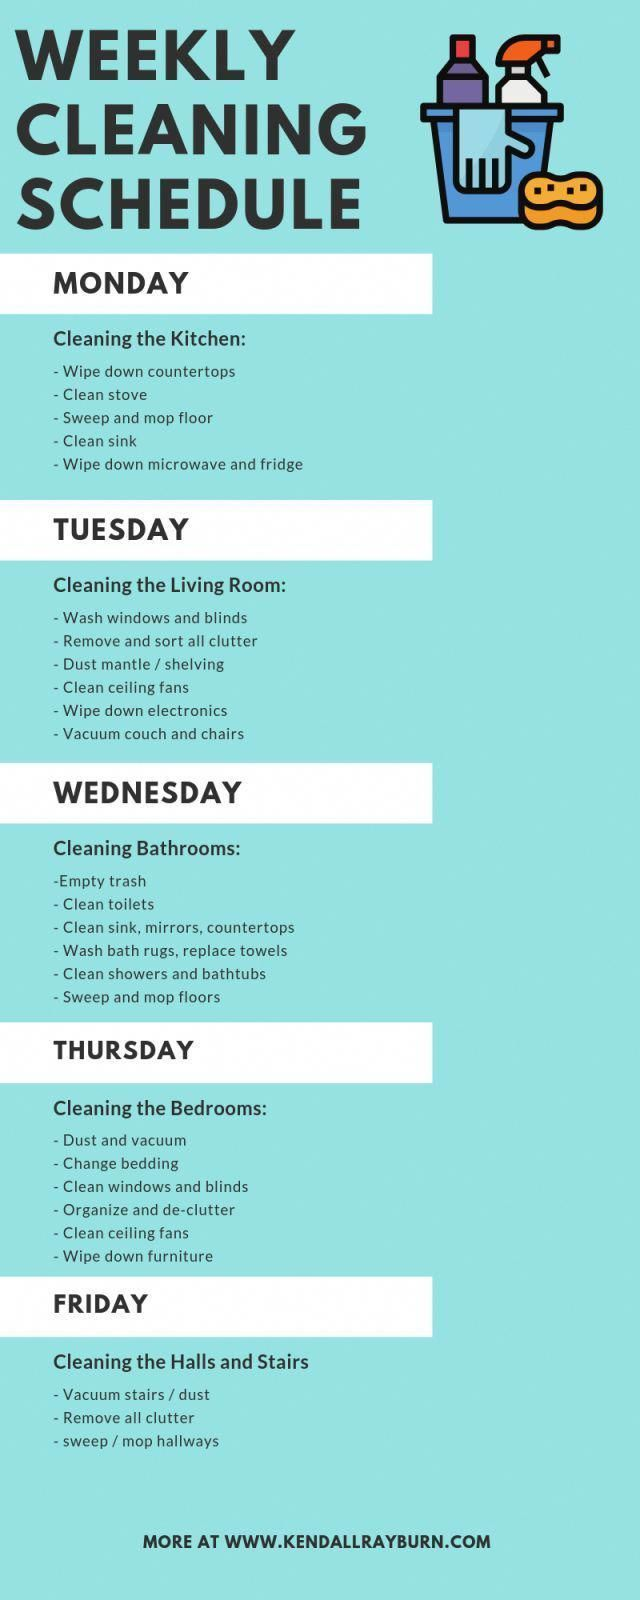 Weekly Cleaning Schedule #healthyhome #healthyhabits #cleaning #DIYhomedecor